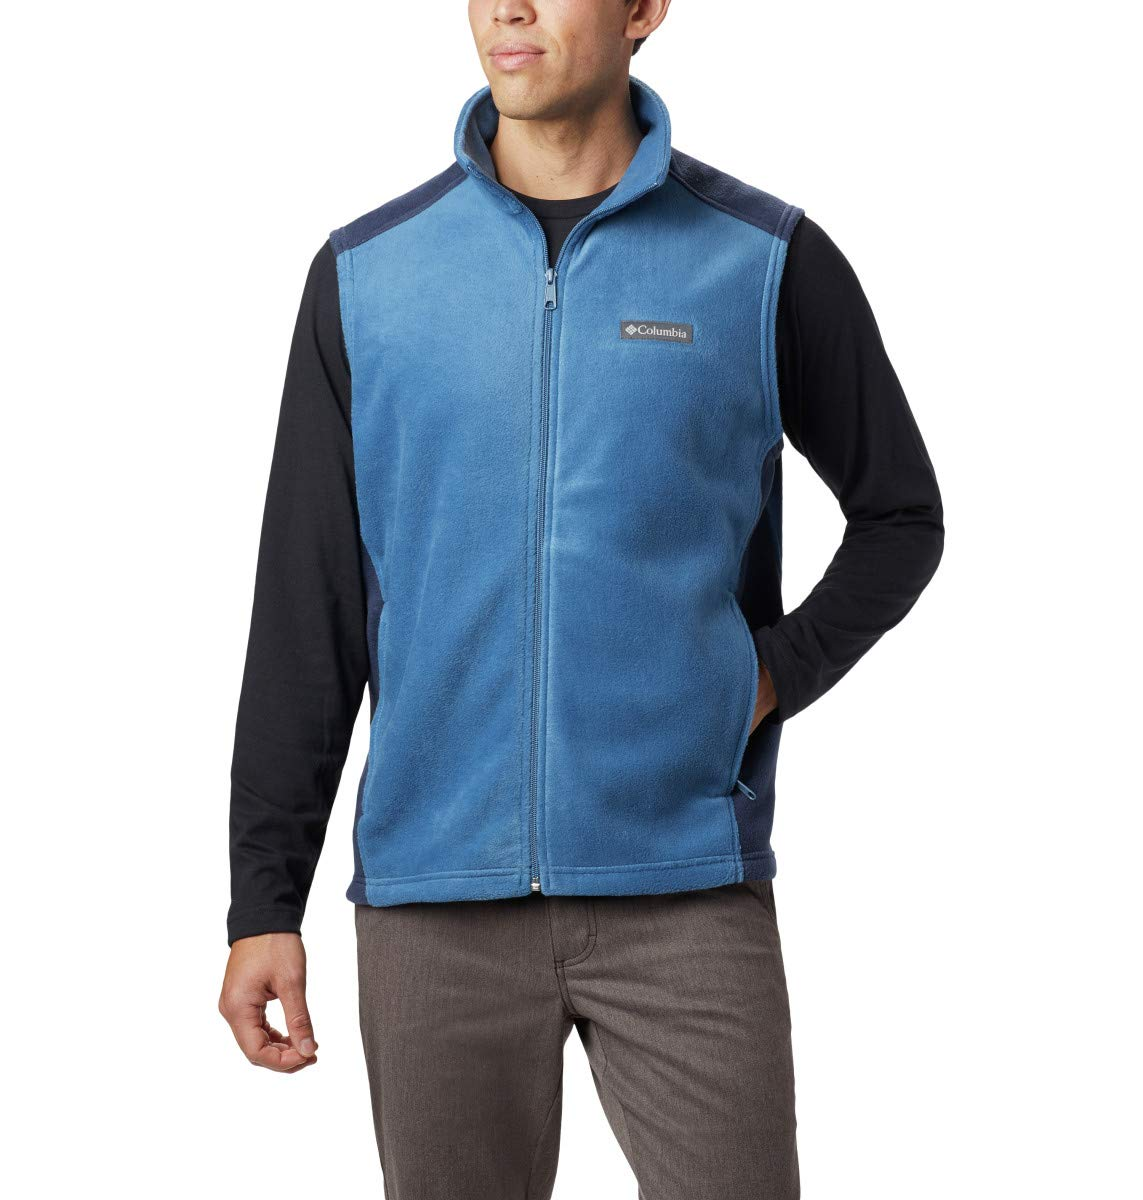 Columbia Men's Steens Mountain Vest, Scout Blue, Collegiate Navy, Large by Columbia